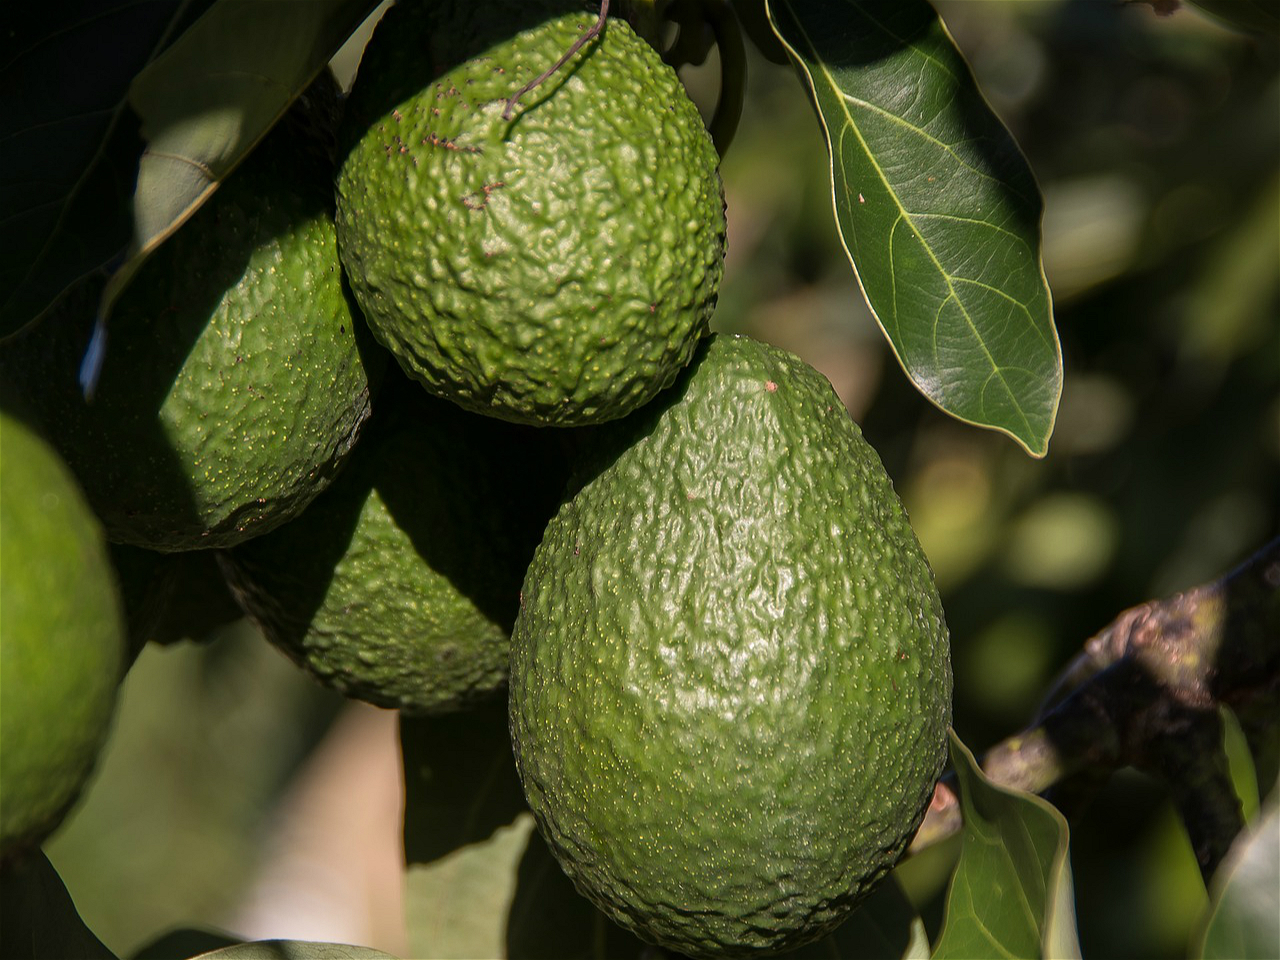 Avocado Boom China S Taste For Avocado Linked To Drought In Latin America